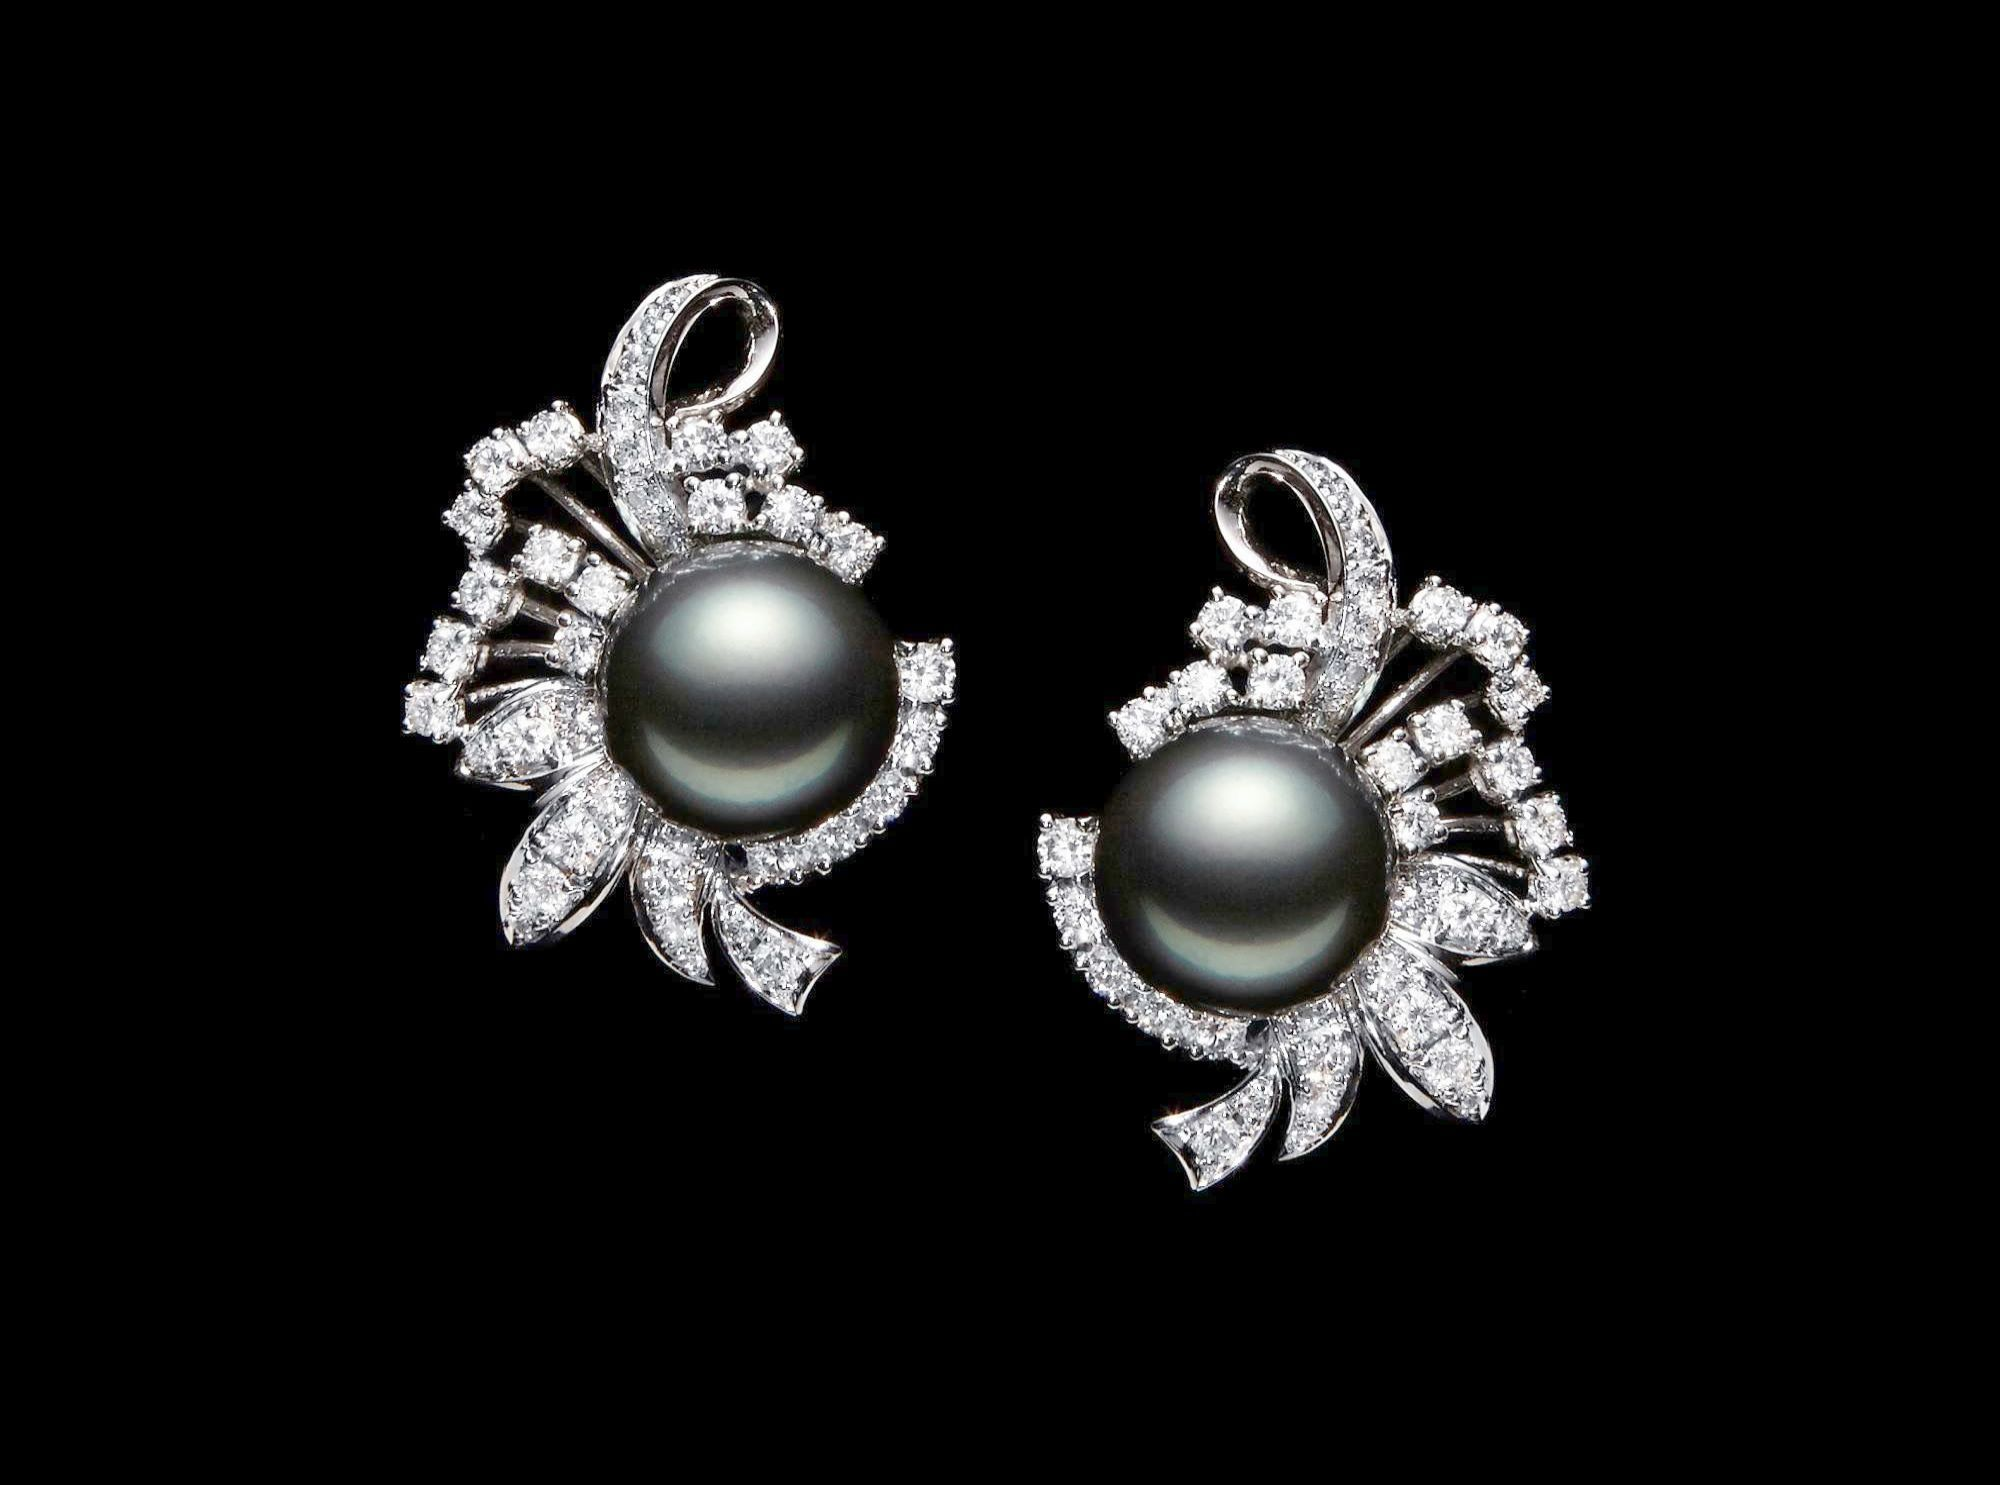 Pearl Hanging Earrings Online Some Cultured